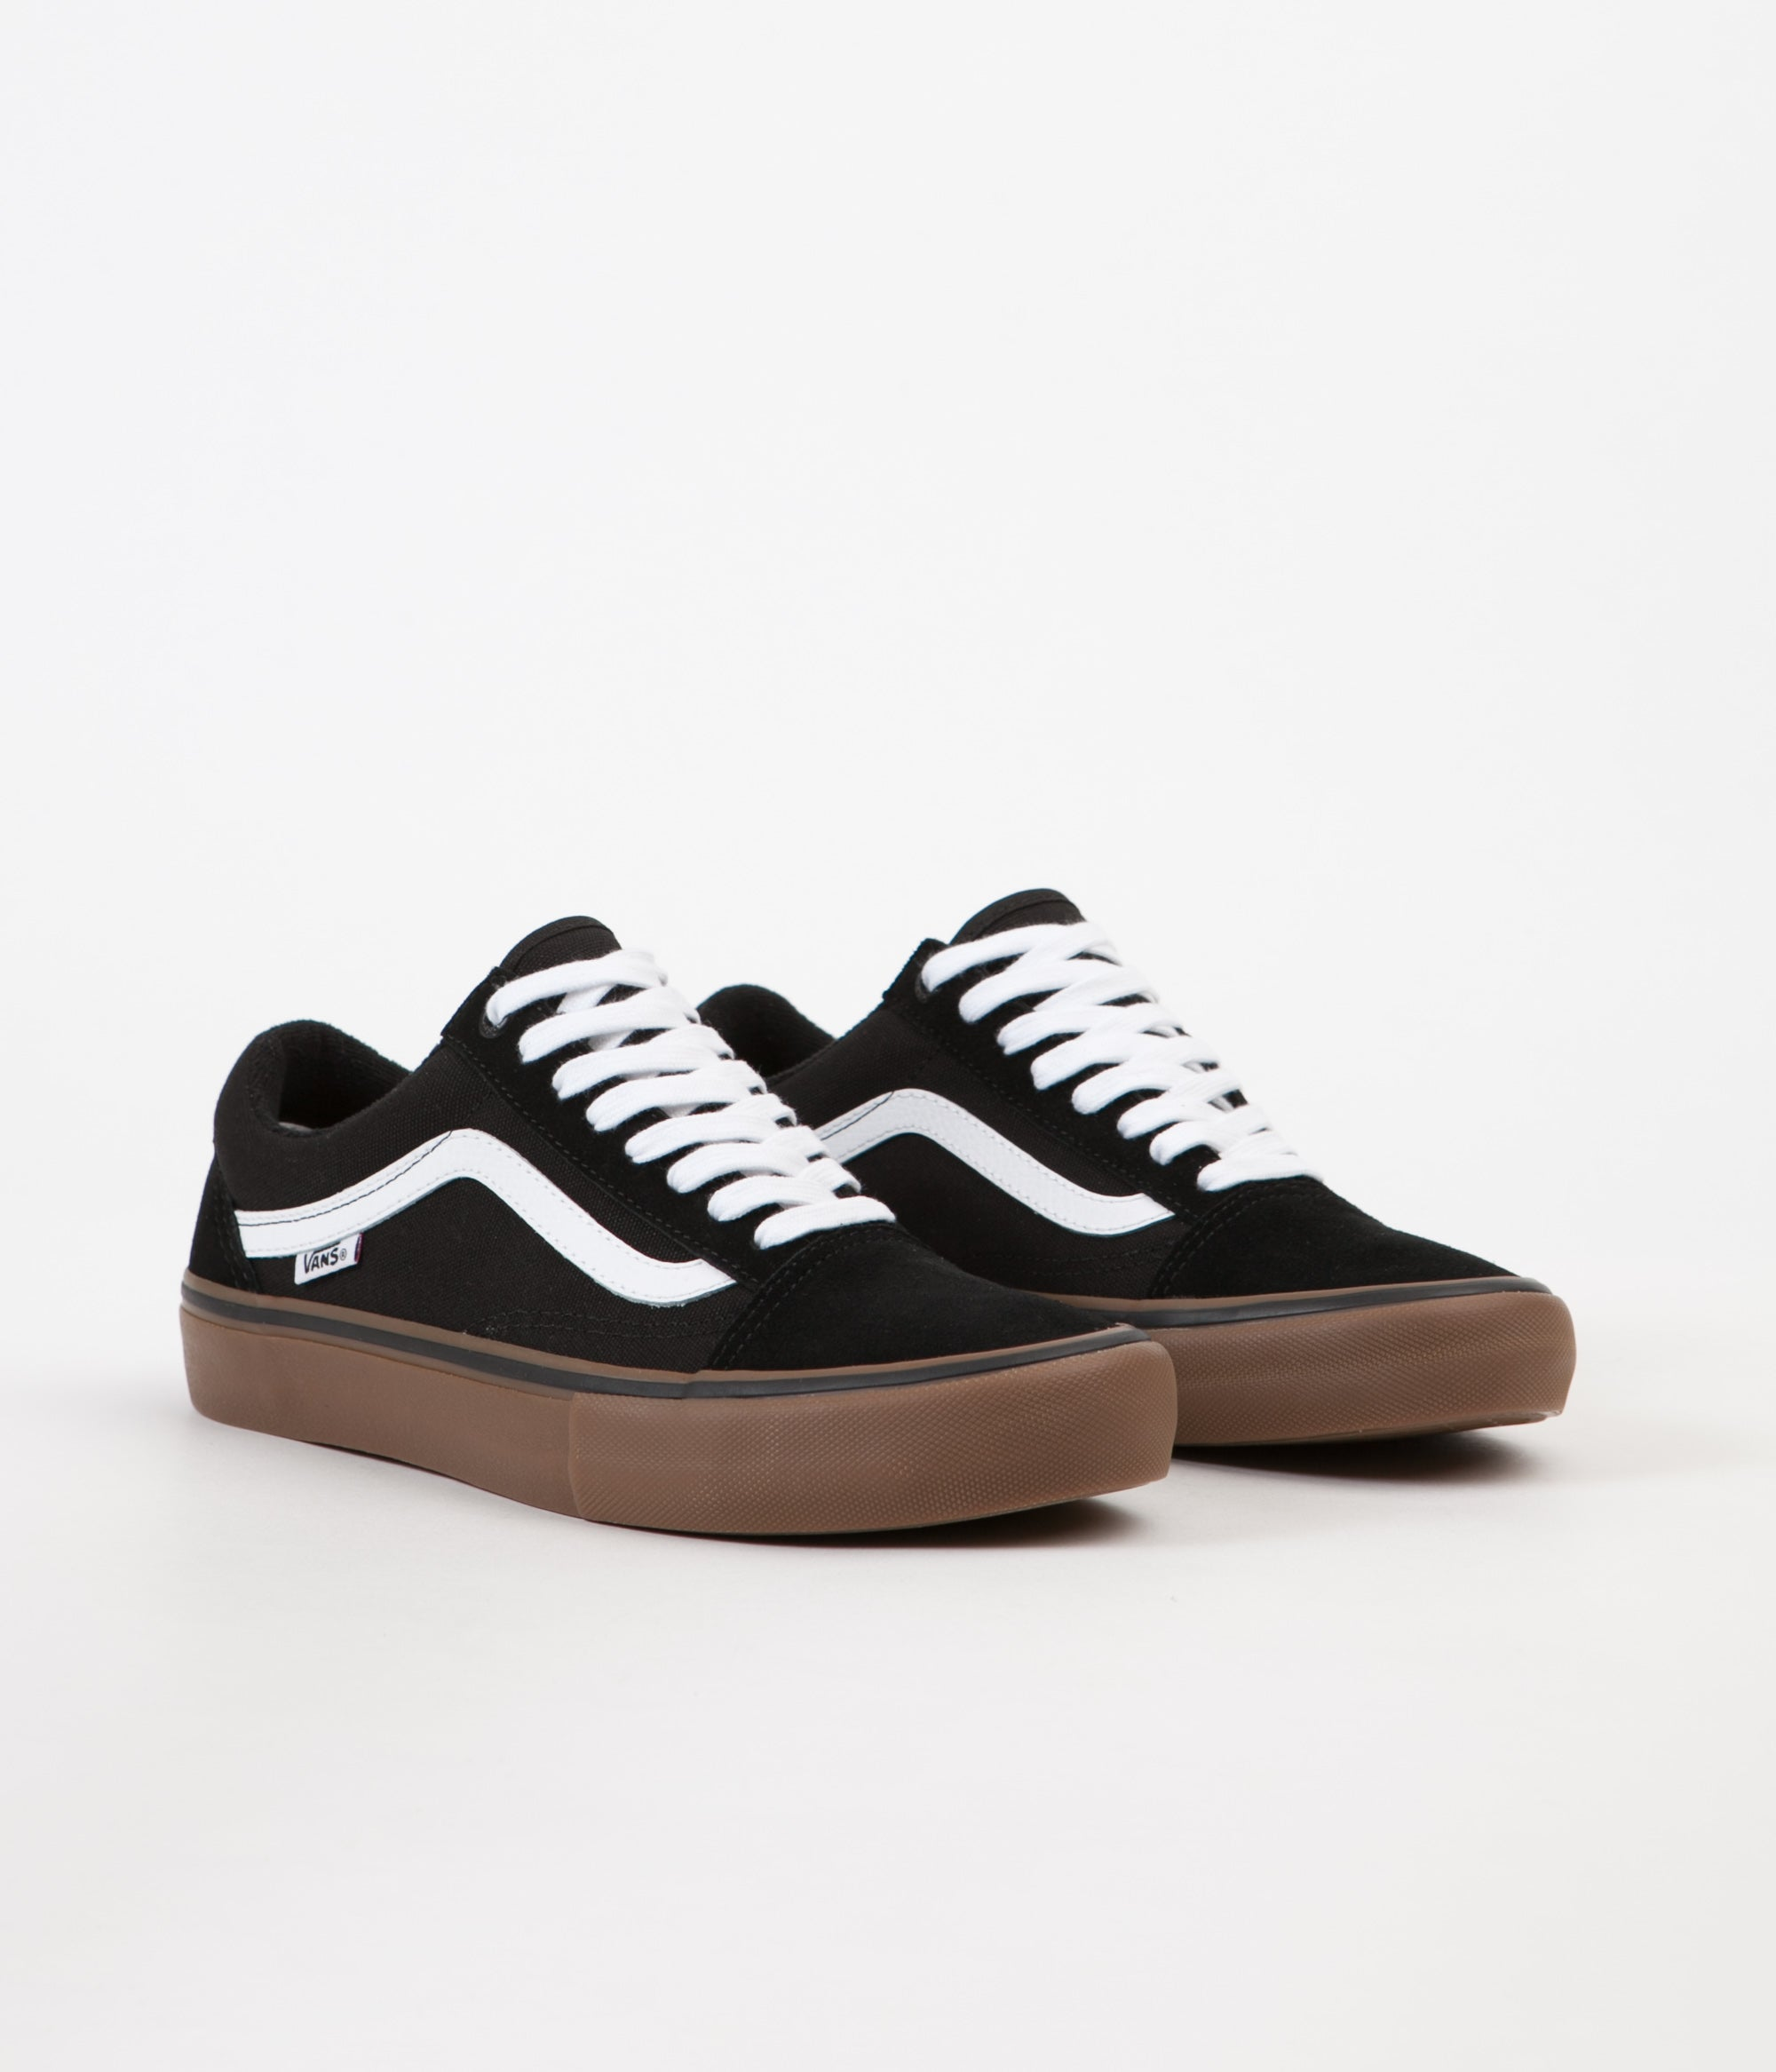 119babd0b7f ... Vans Old Skool Pro Shoes - Black   White   Medium Gum ...